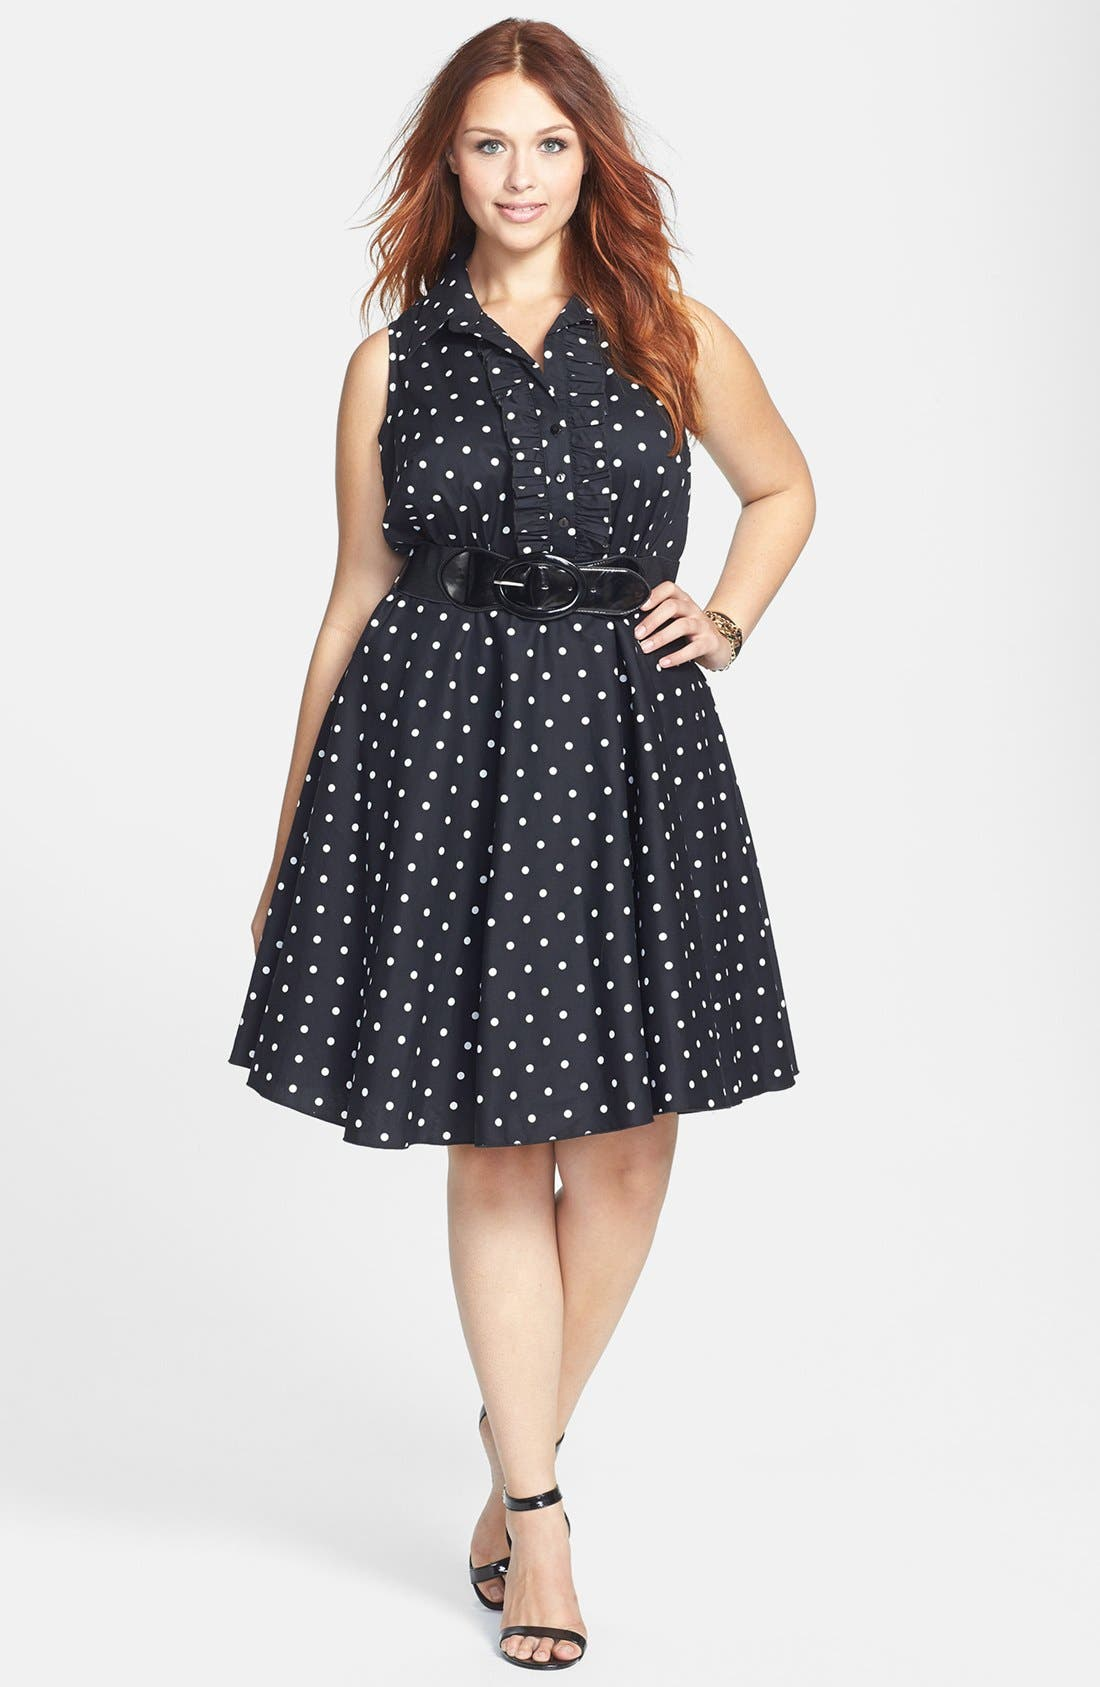 Main Image - City Chic Polka Dot Cotton Sateen Fit & Flare Dress (Plus Size)